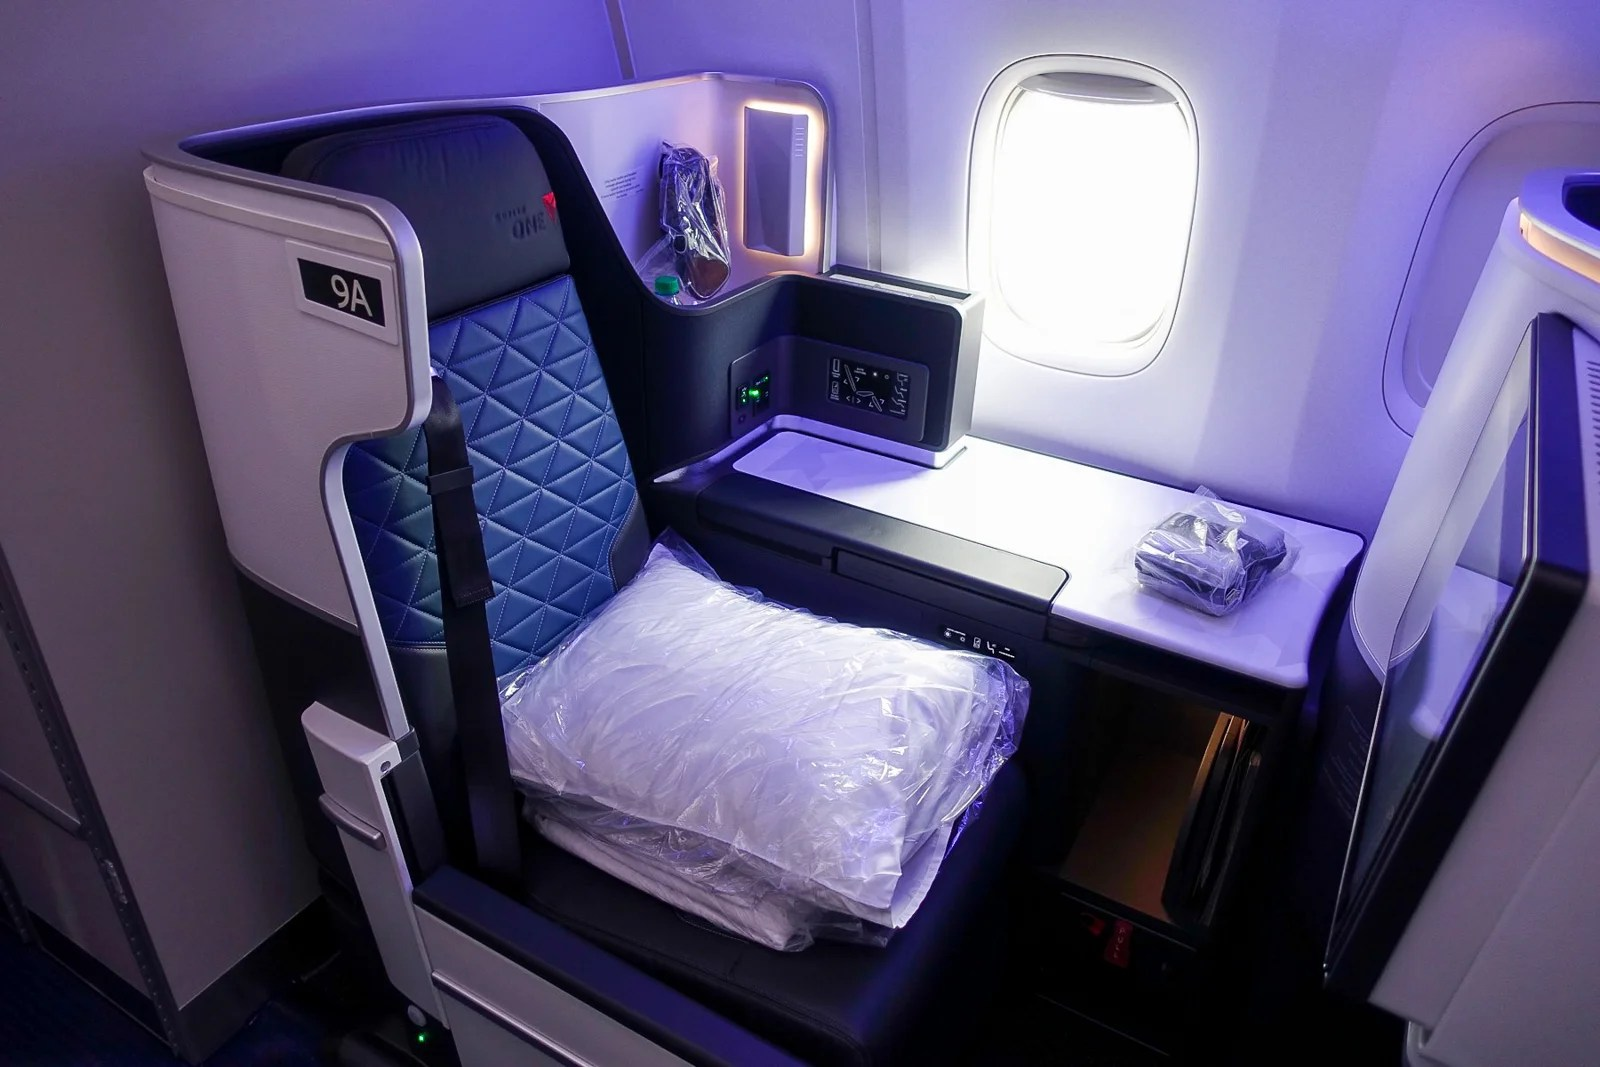 Aboard Delta's First Retroed 767-400ER With Brand-New ... on delta boeing 767-400, boeing 767 business seat map, delta boeing 747 seat map, delta 757 seat map, delta airlines seat map, delta boeing 777-300er seat map, united airlines 767 seat map, delta 767-400er seat map, delta seating chart,